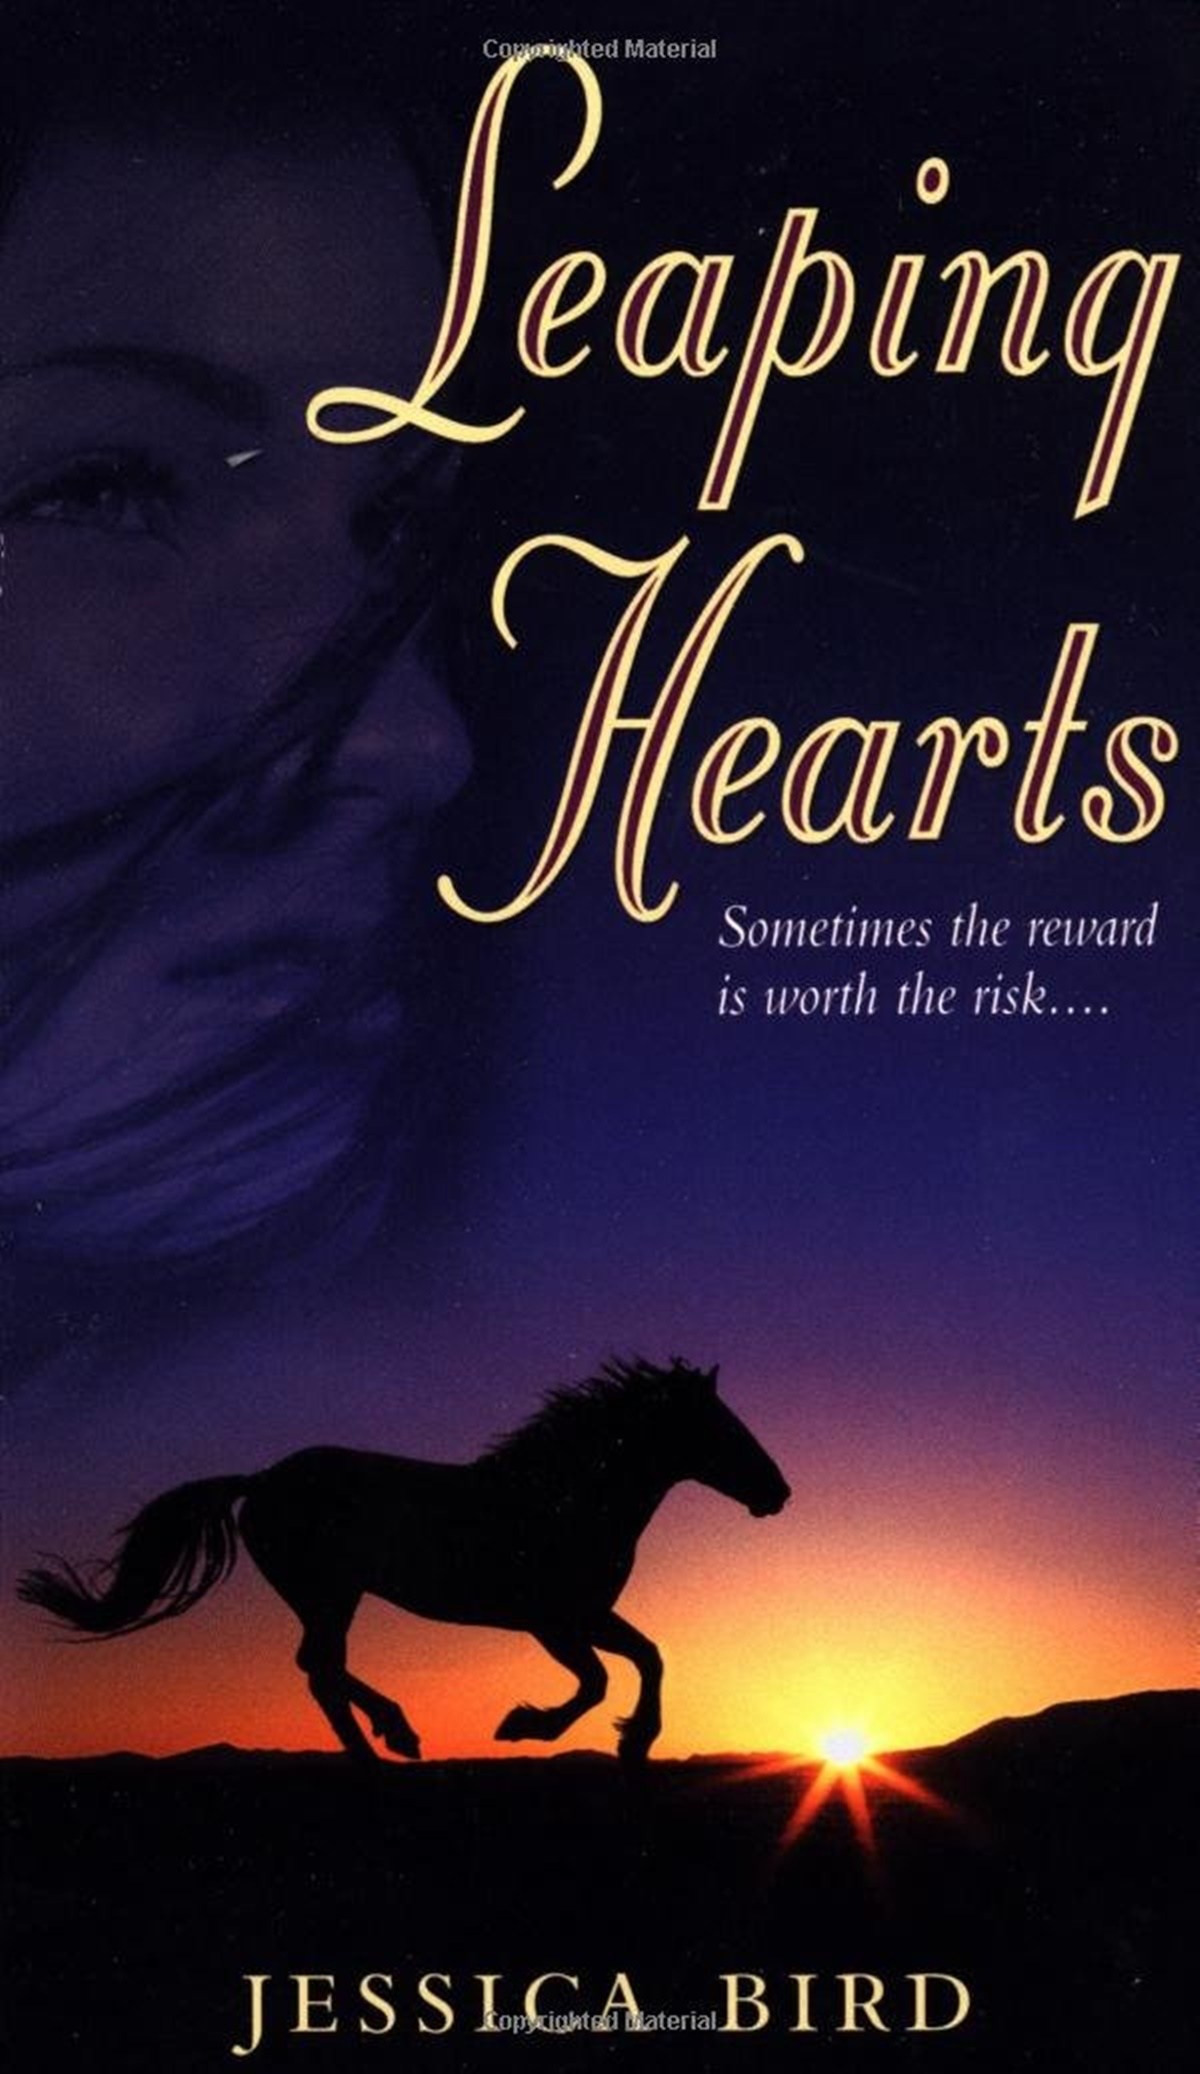 Jessica Bird Books, cover of Leaping Hearts by Jessica Bird, books